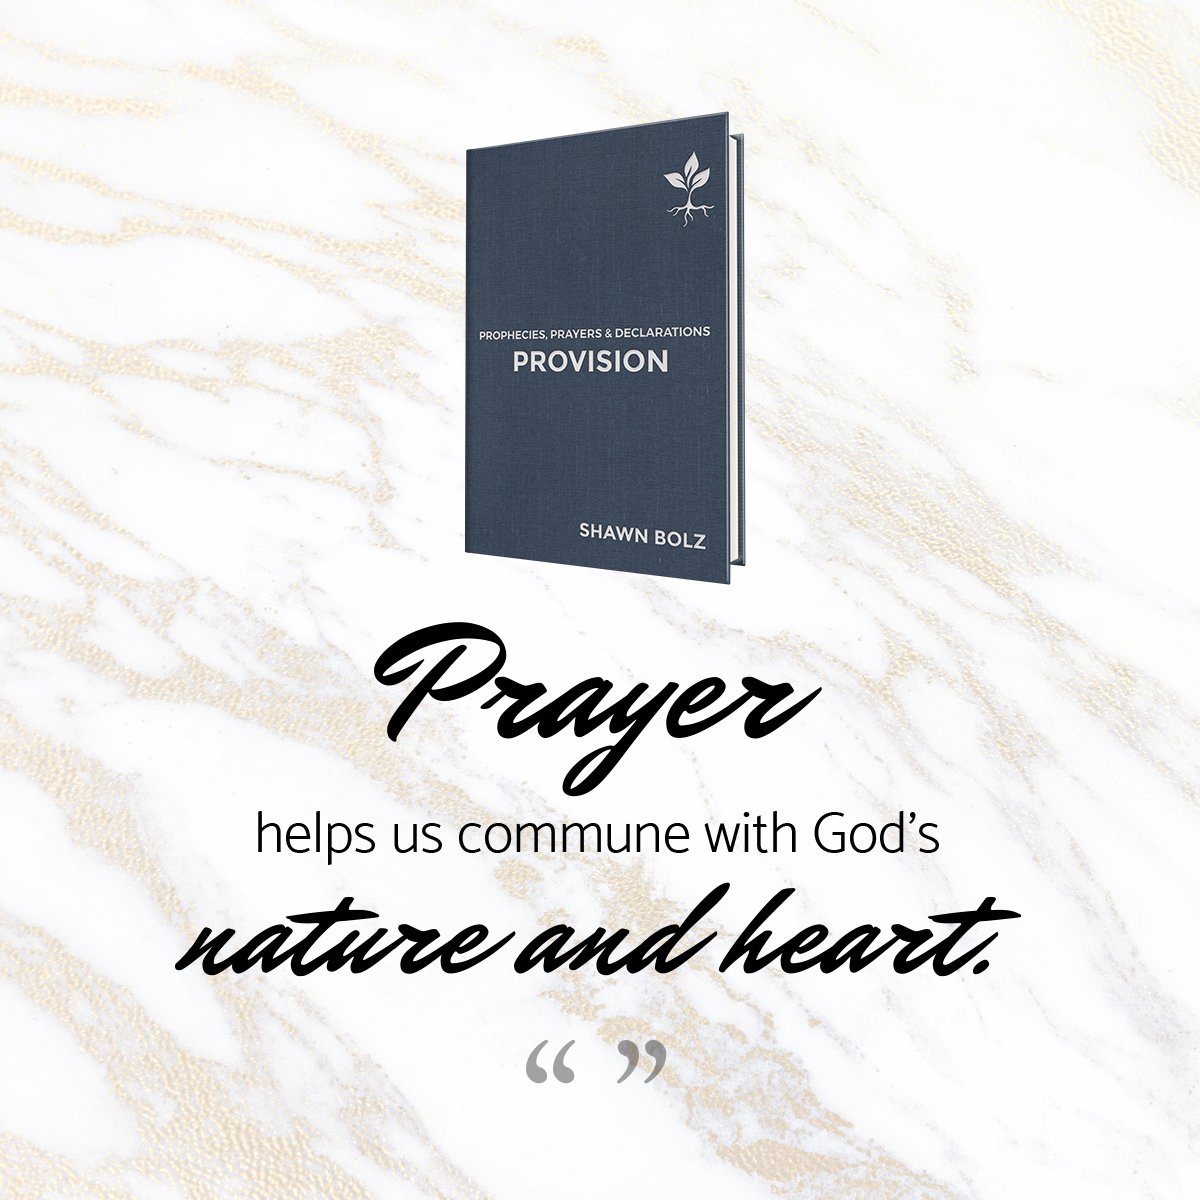 Prayer helps us commune with God's nature and heart! PROVISION ----> bit.ly/2zif1Jh